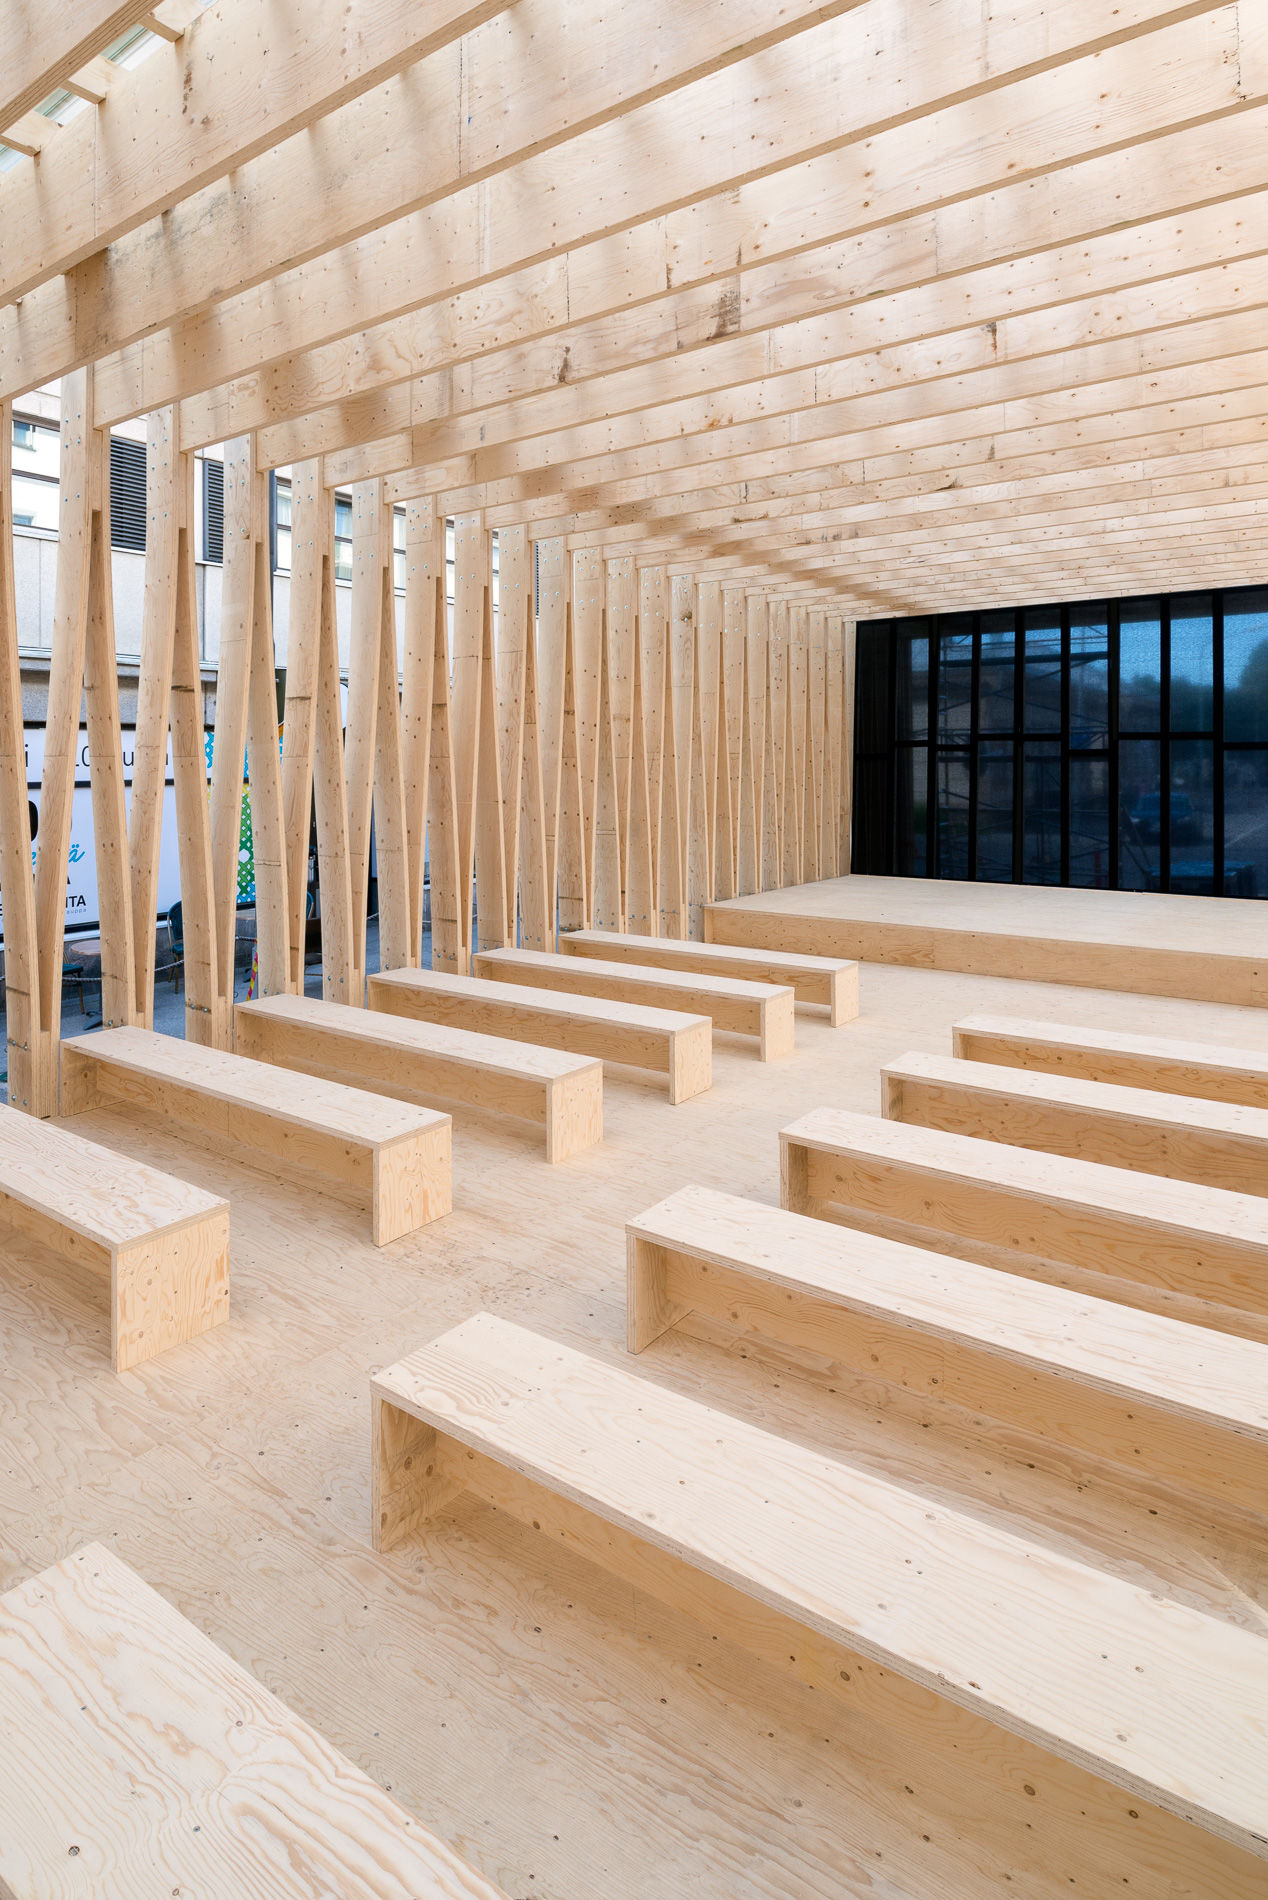 The base of the Aika stage is made up of 50 laminated veneer lumber frames with 100 legs symbolising Finland's era of independence. Photo: Vesa Loikas